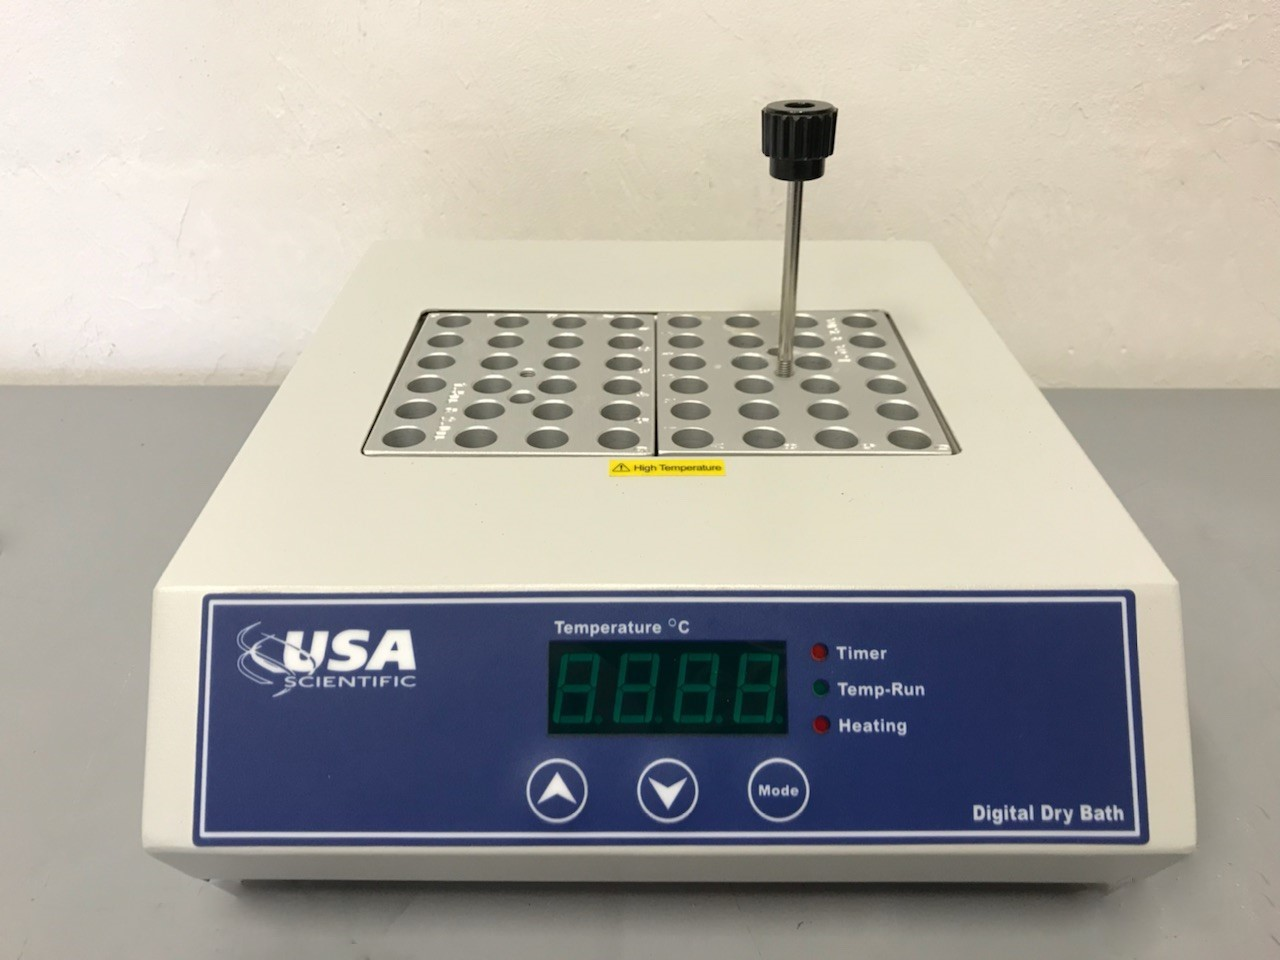 USA Scientific BSH1002 Dry Bath Incubator